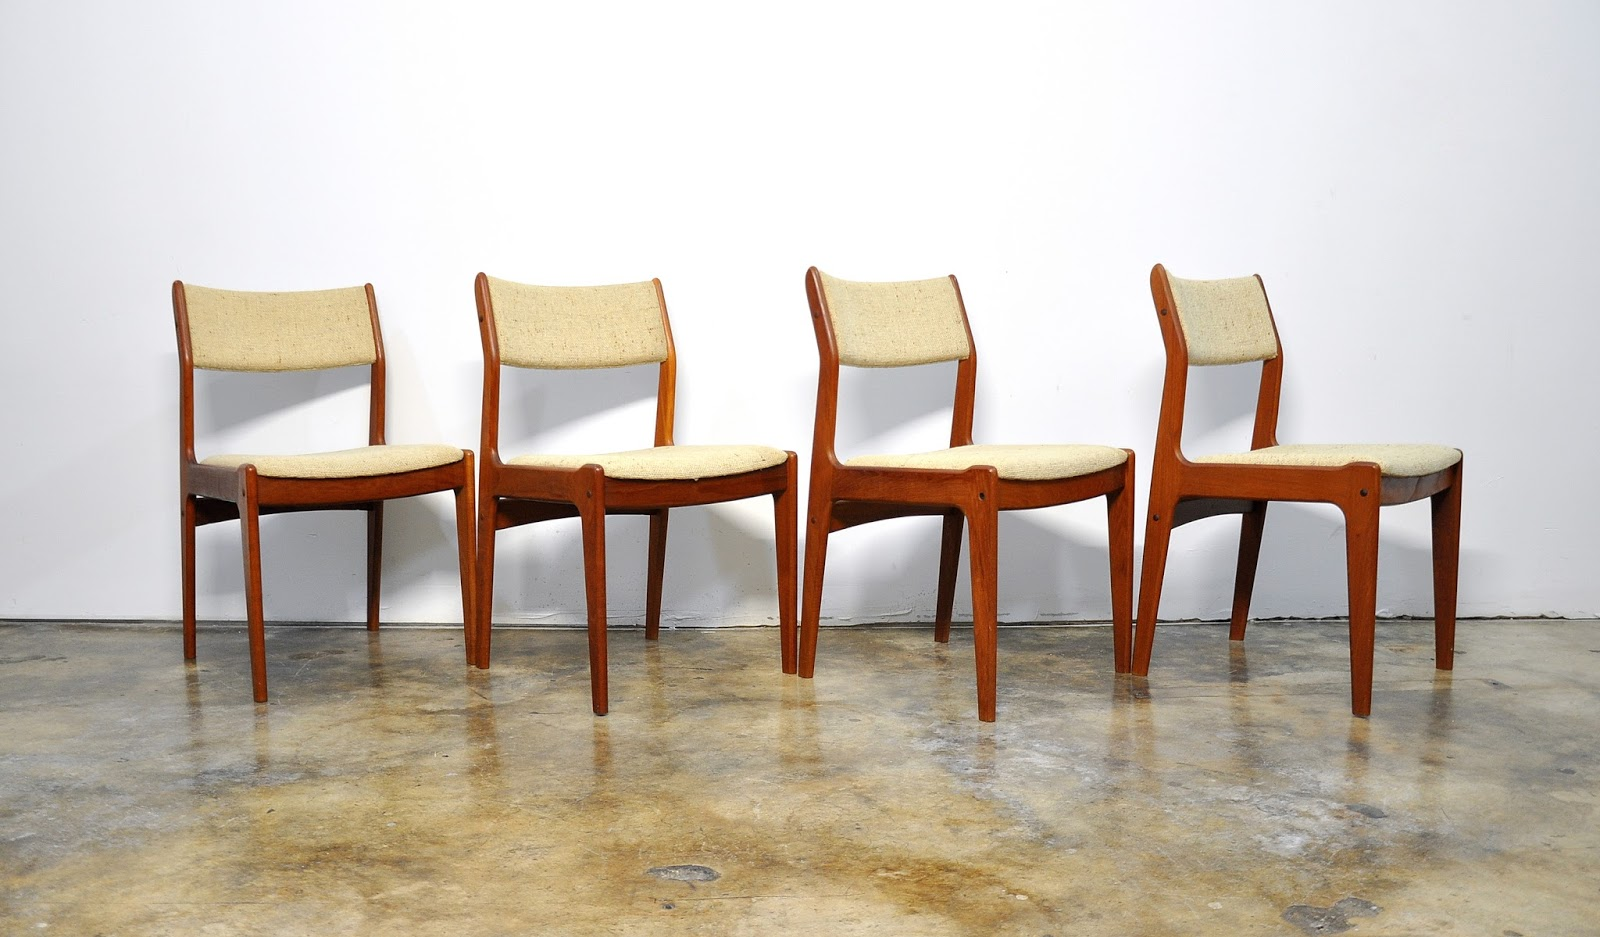 Danish Dining Chair Contour Lounge Select Modern Set Of 4 Teak Chairs